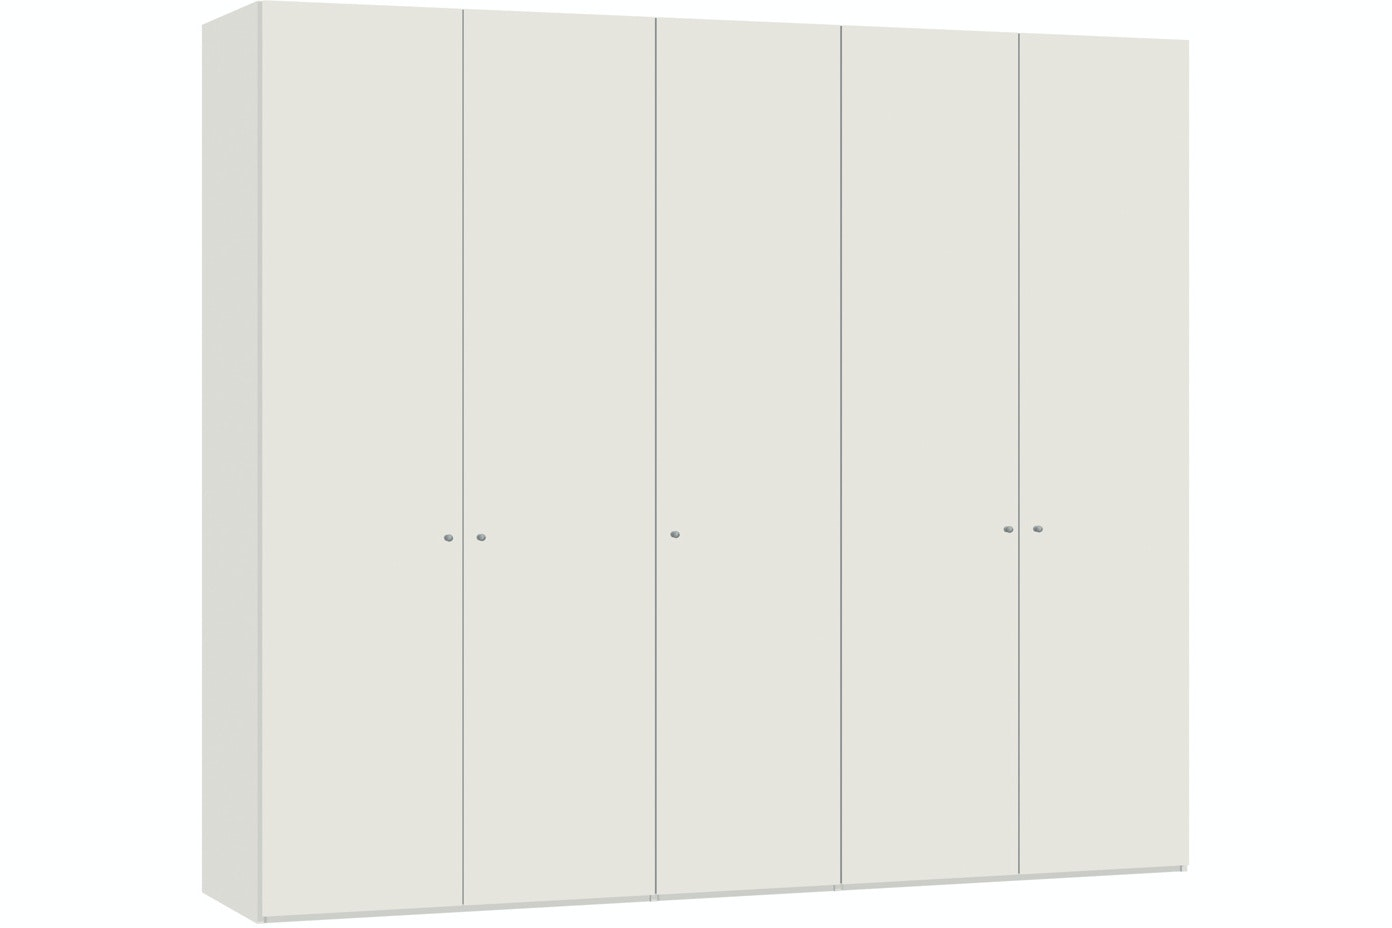 Yasmin Hinged 5 Door Wardrobe 253Cm | White High Gloss